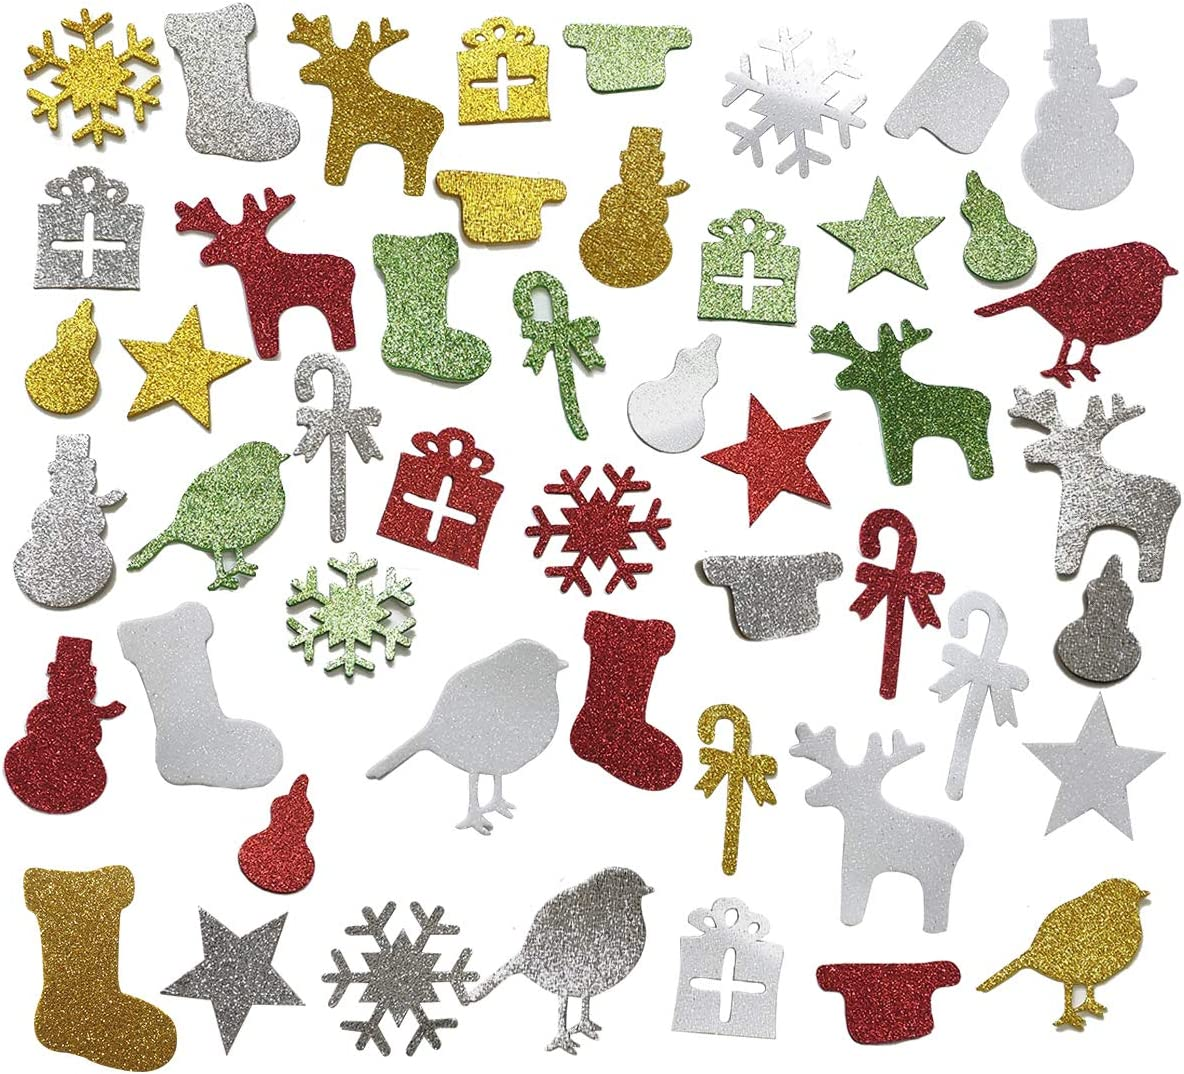 Misscrafts 150pcs Foam Glitter Stickers Self-Adhesive Christmas Theme Stickers for Christmas Decors Greeting Cards Home Party Supplies